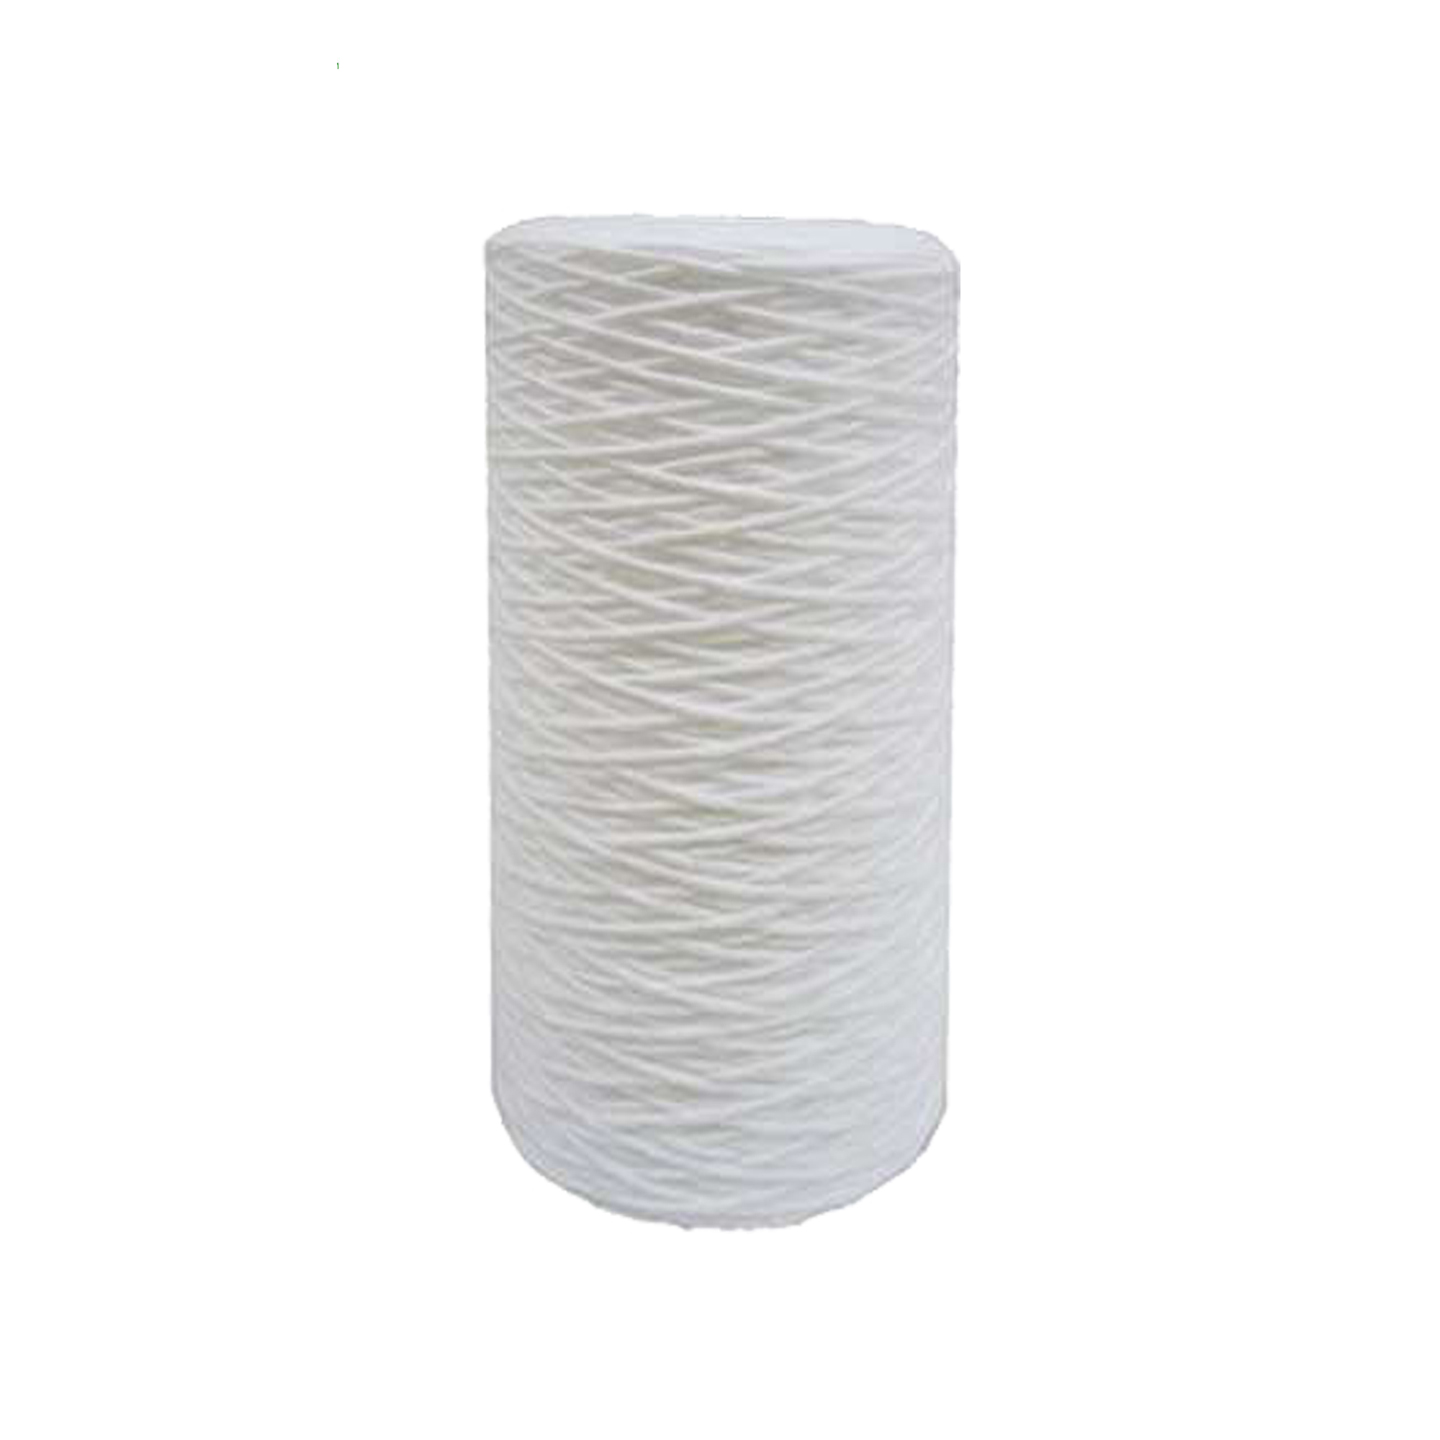 Image of 10-Inch x 4.5-Inch String-Wound Filter by Tier1 (1 micron)